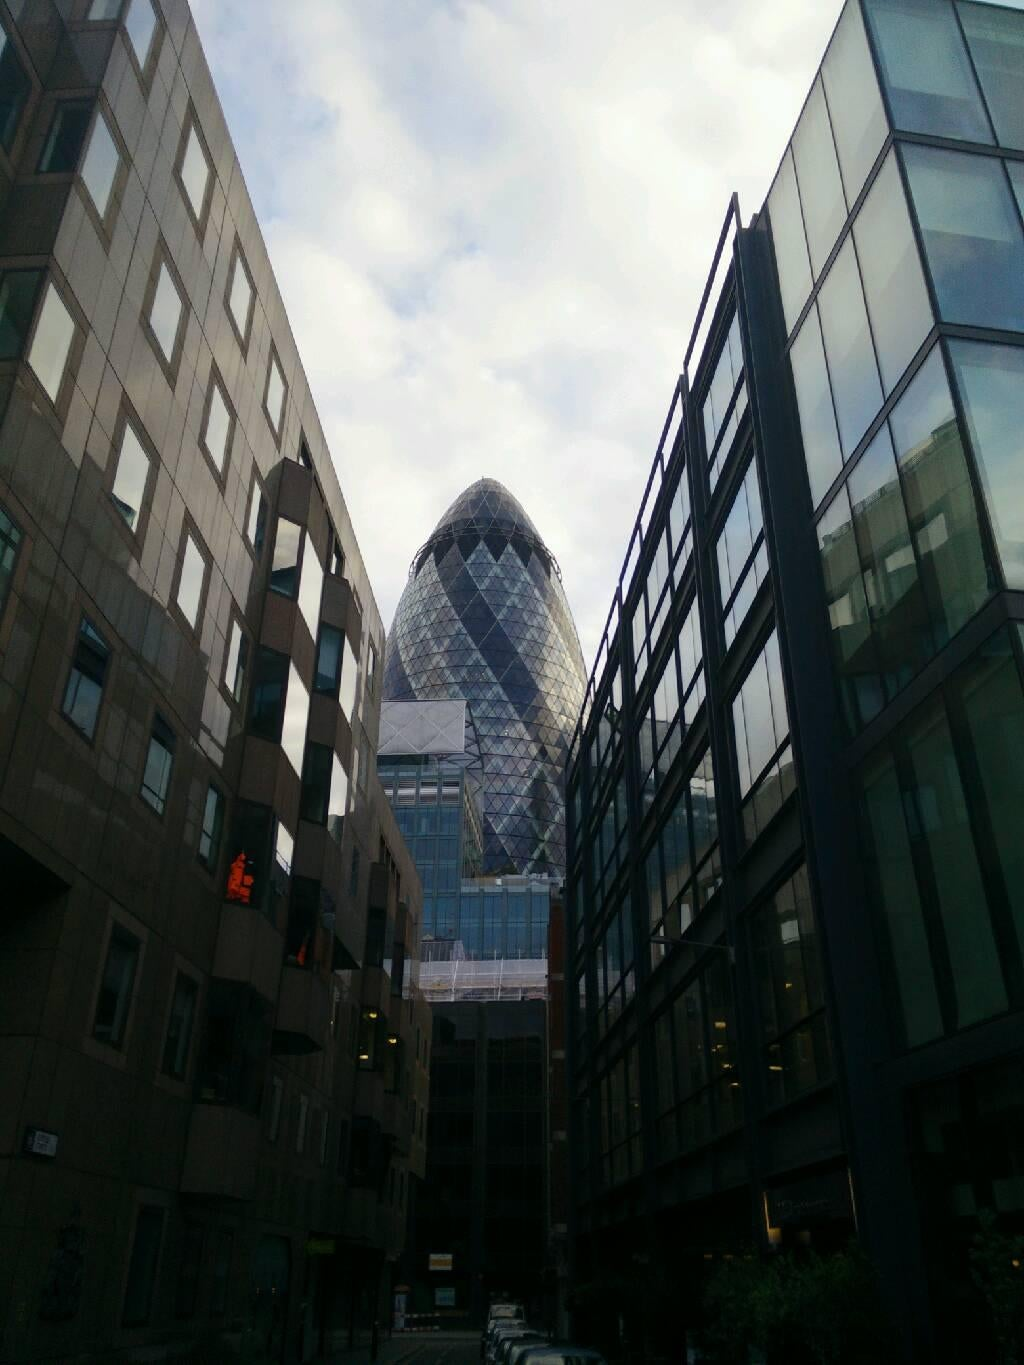 Casa en Swiss Re Tower - Torre Gherkin